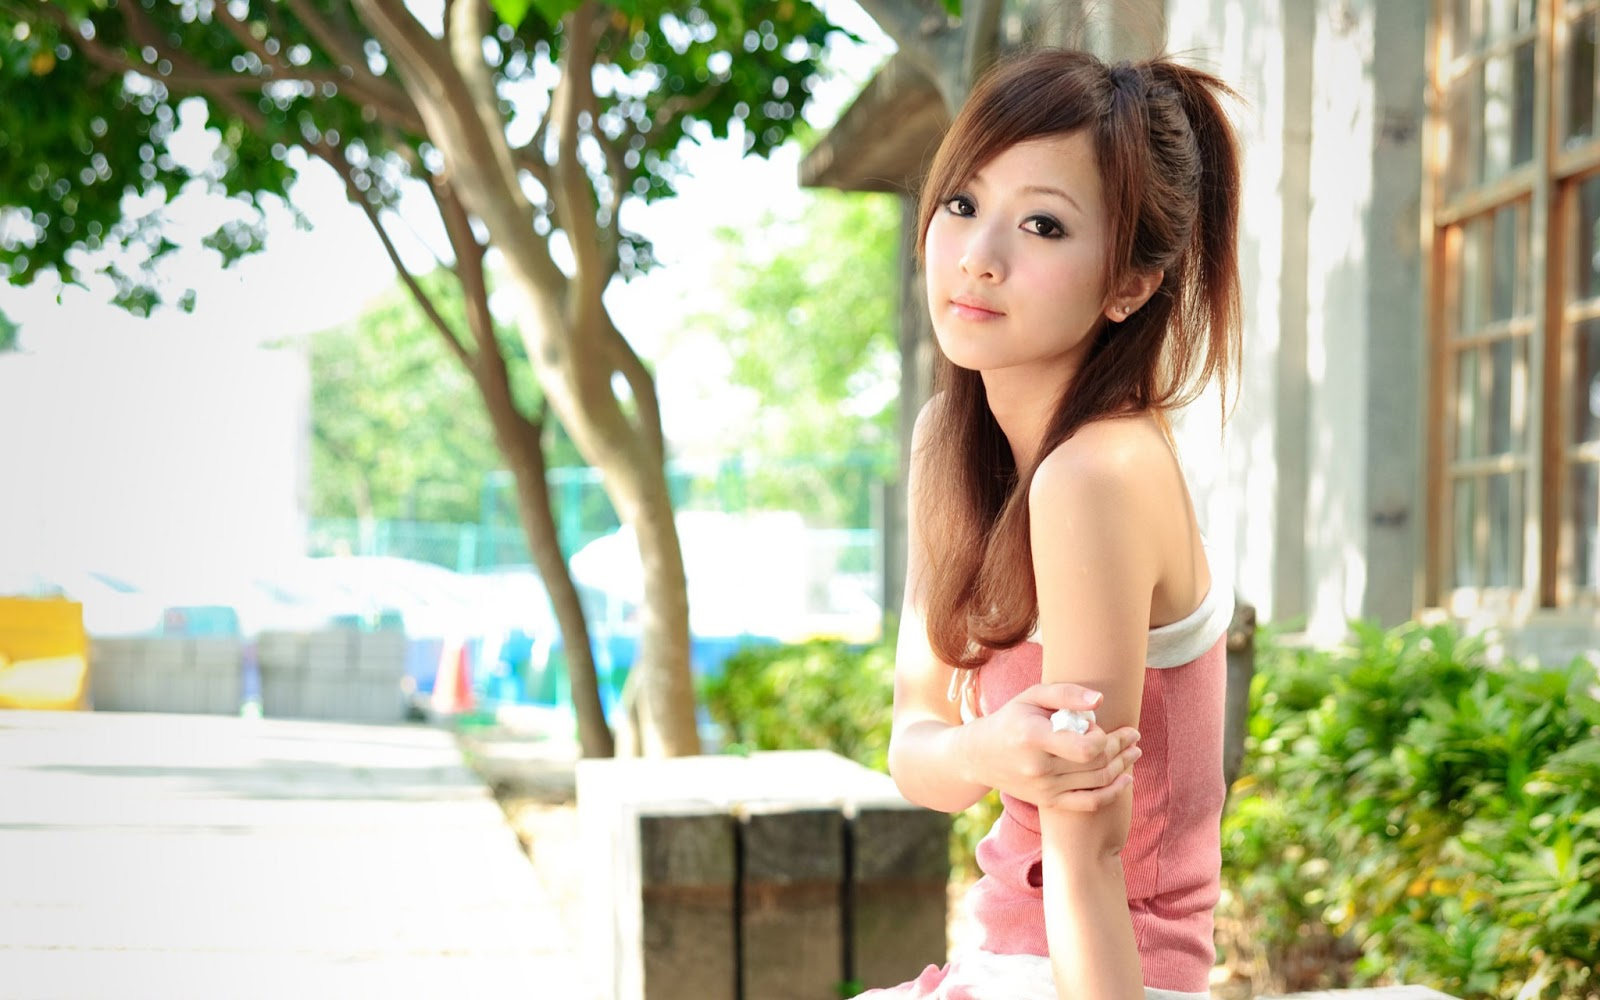 dating nettside thai model escort